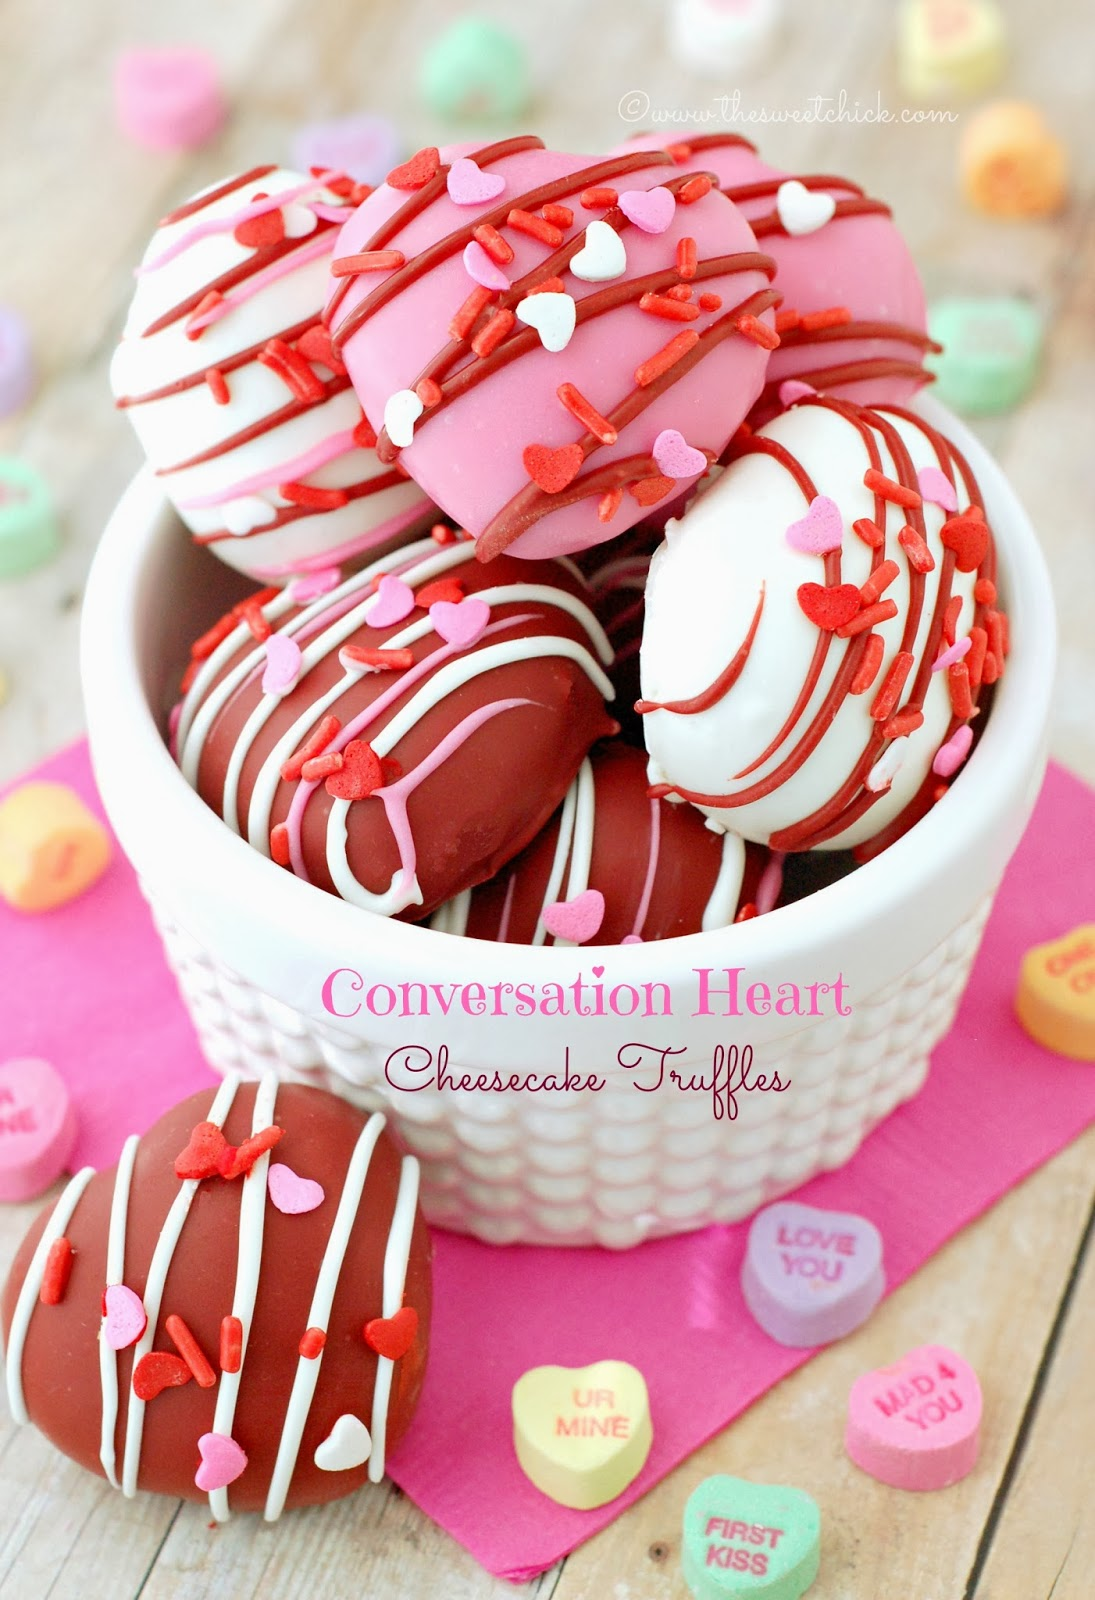 Conversation Heart Cheesecake Truffles by The Sweet Chick